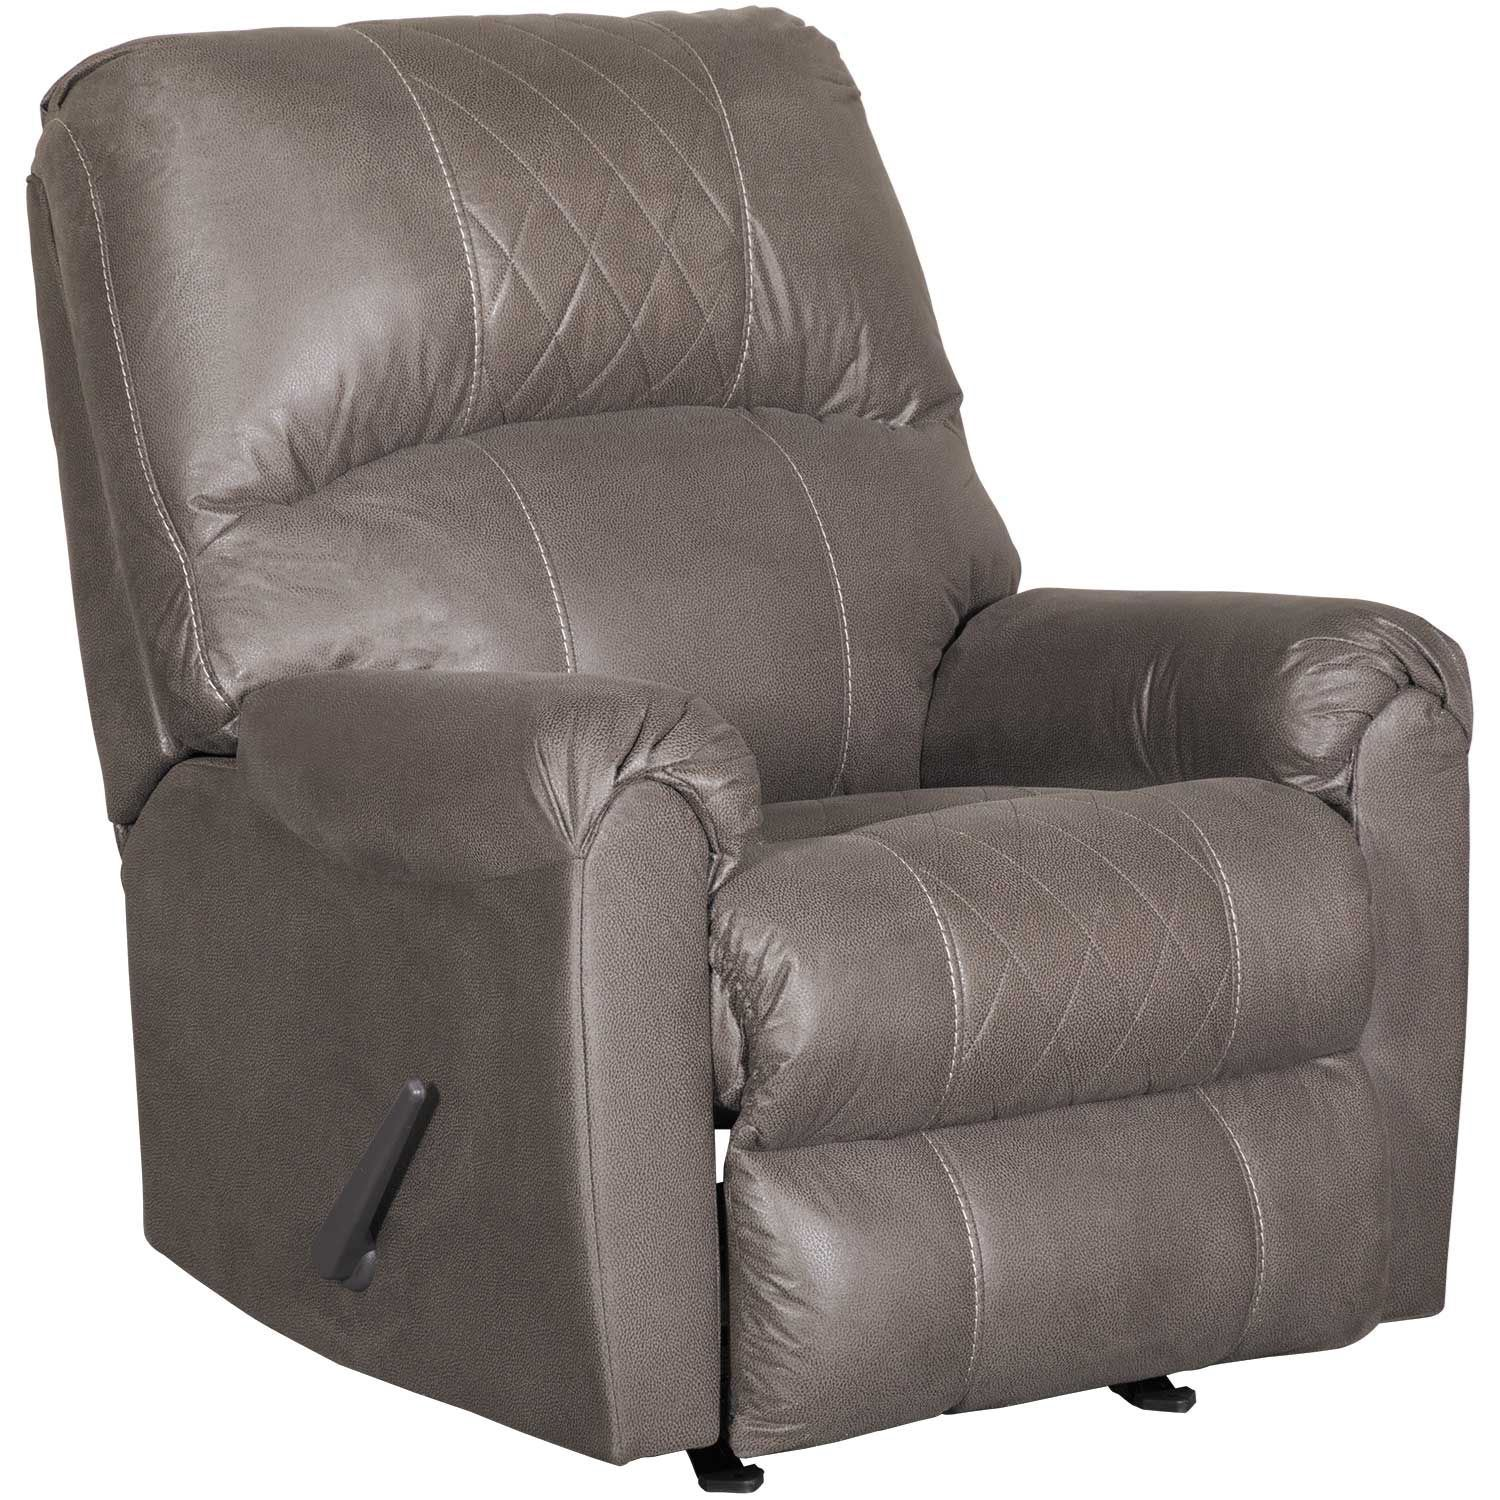 Global Patient Recliner Market growth prospects, key vendors, future scenario forecast to 2026:  Steelcase, Nemschoff, Medline Industries, Regency Healthcare